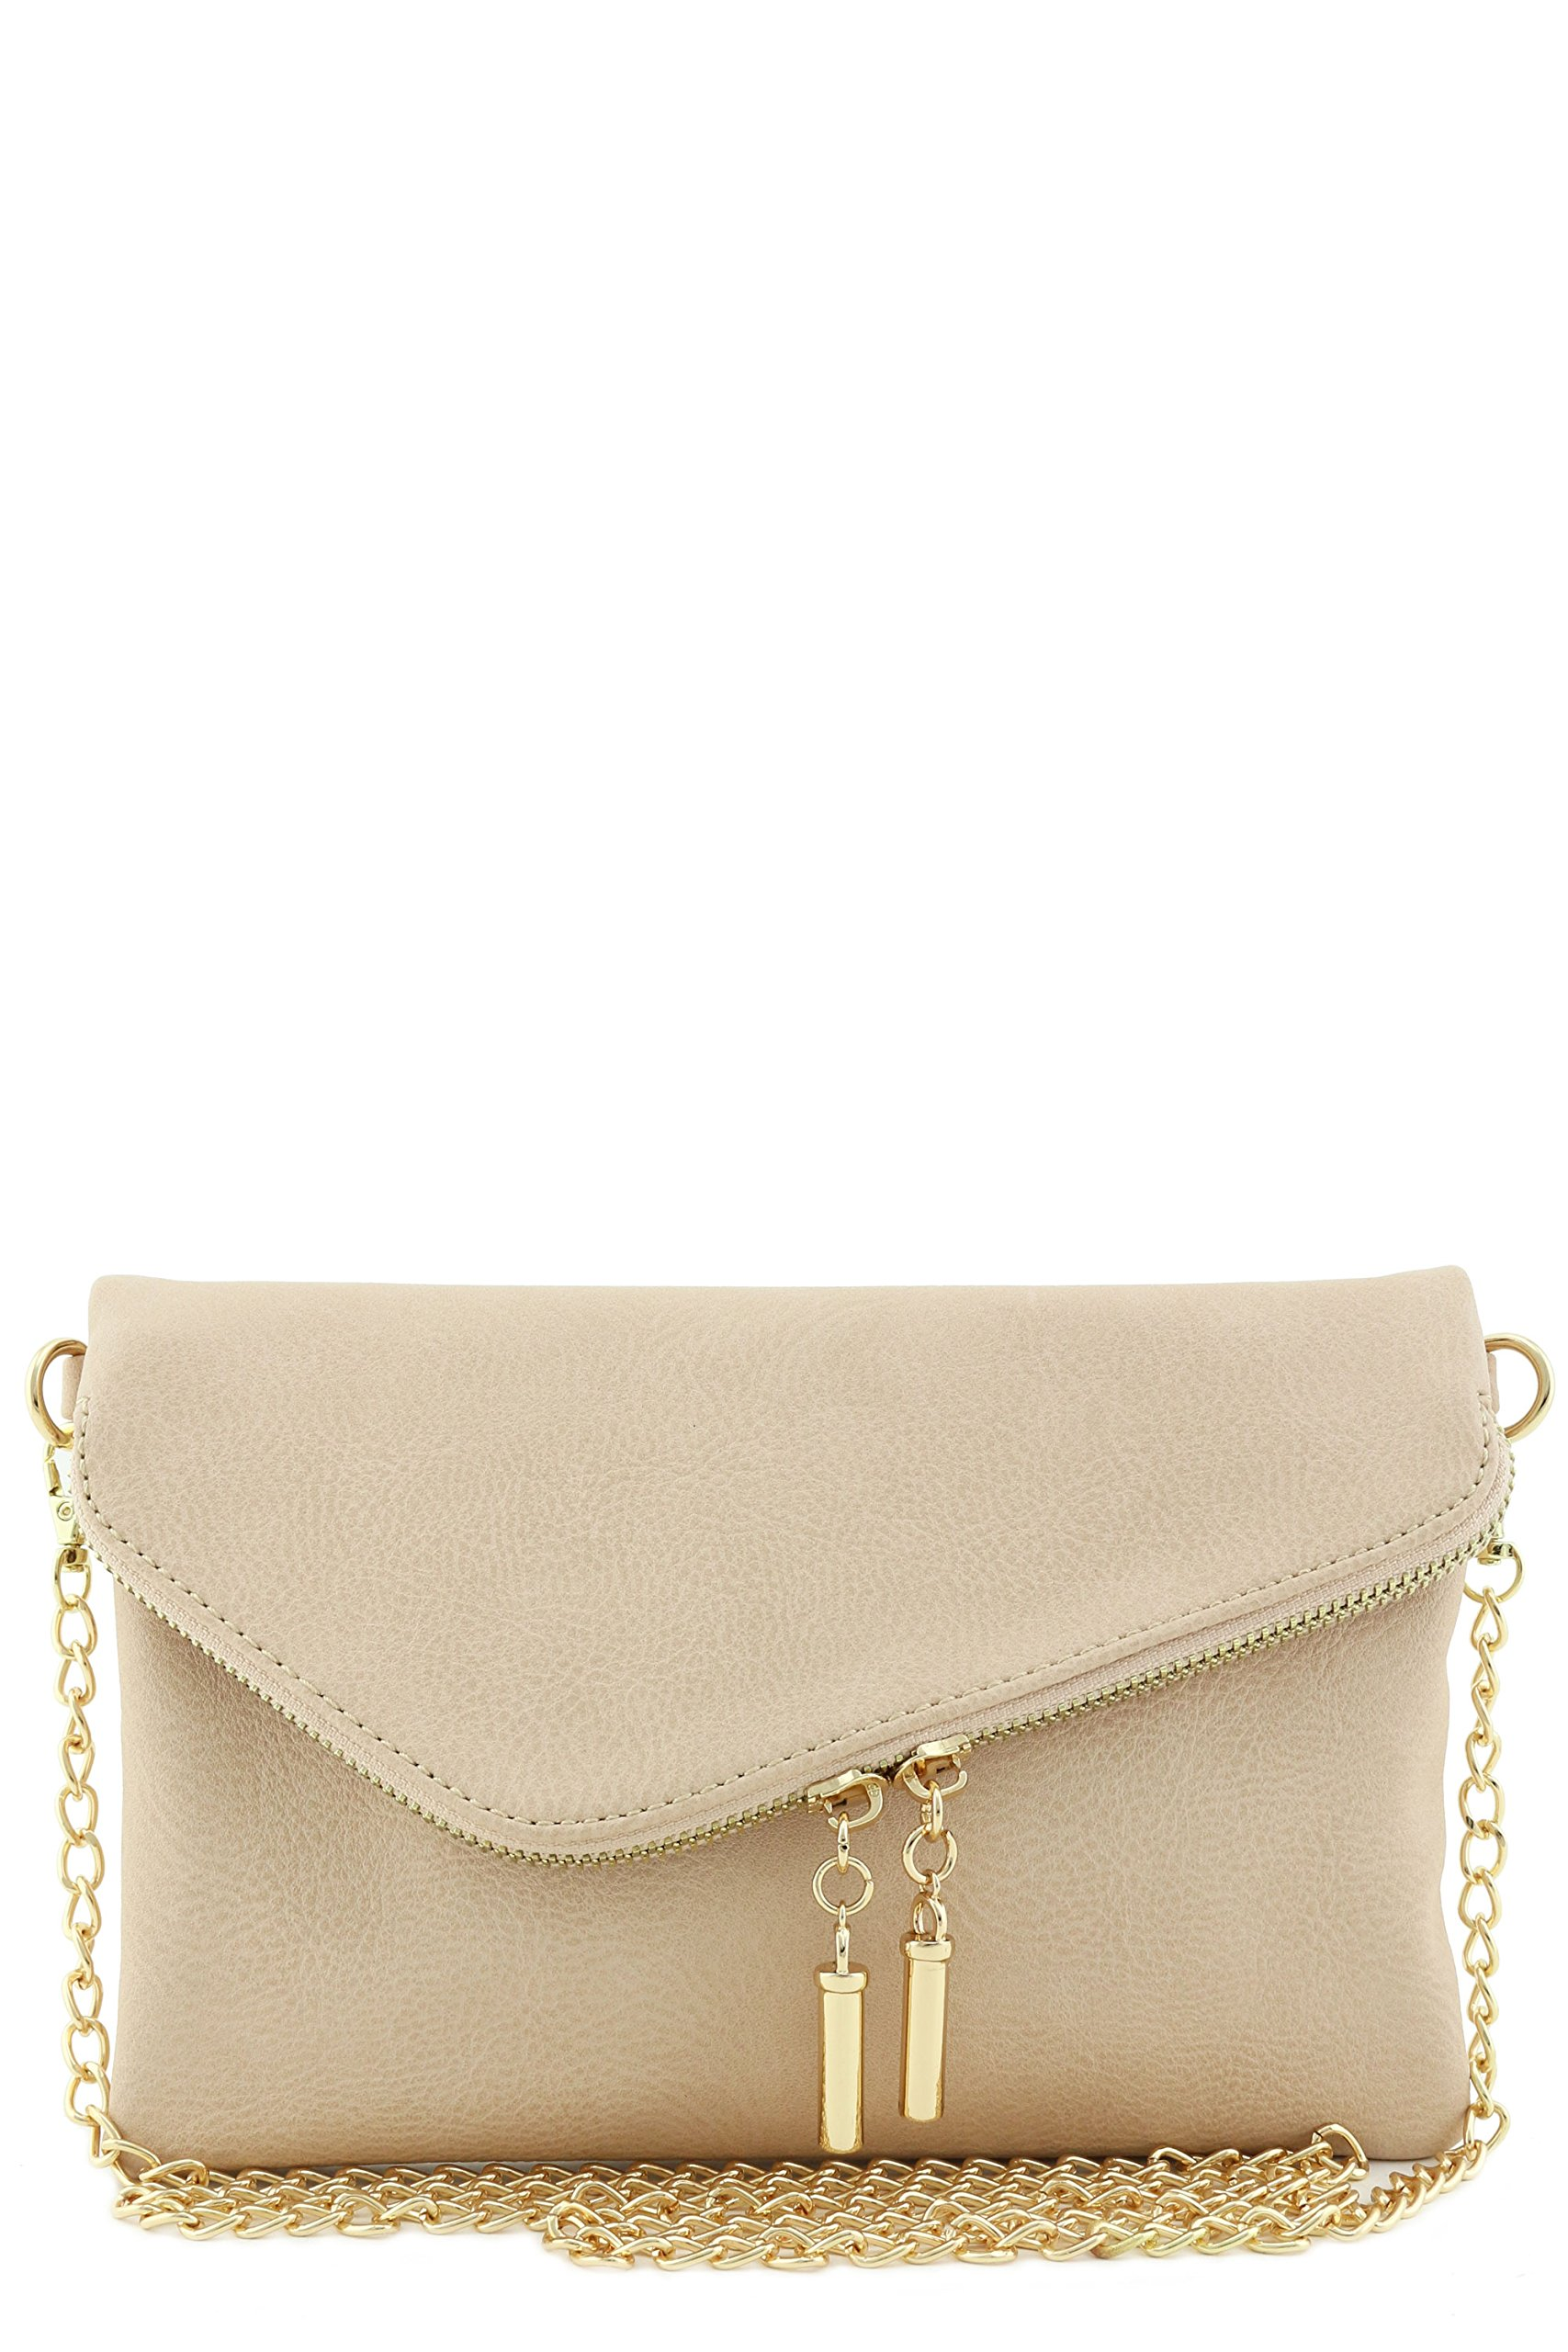 Envelope Wristlet Clutch Crossbody Bag with Chain Strap Nude